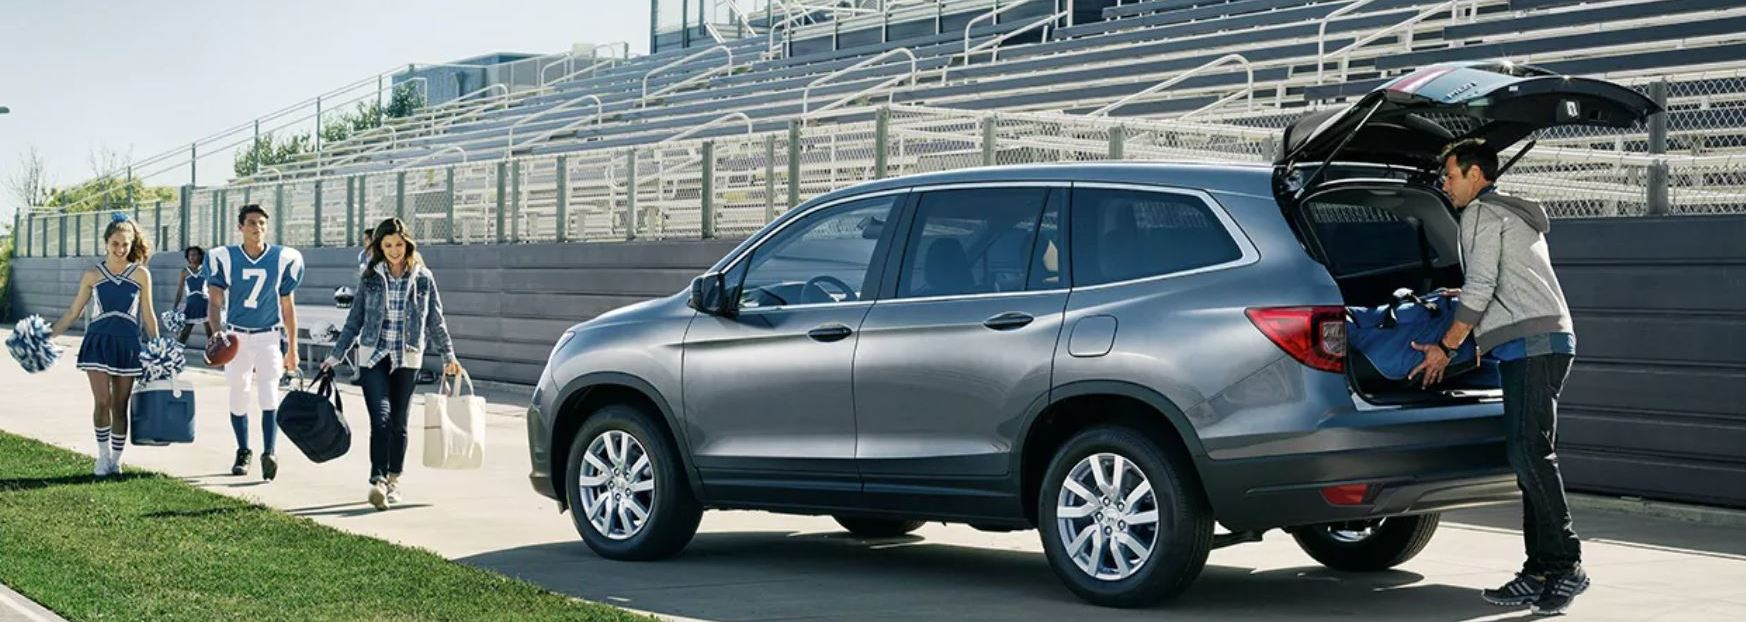 2020 Honda Pilot for Sale near Washington, DC